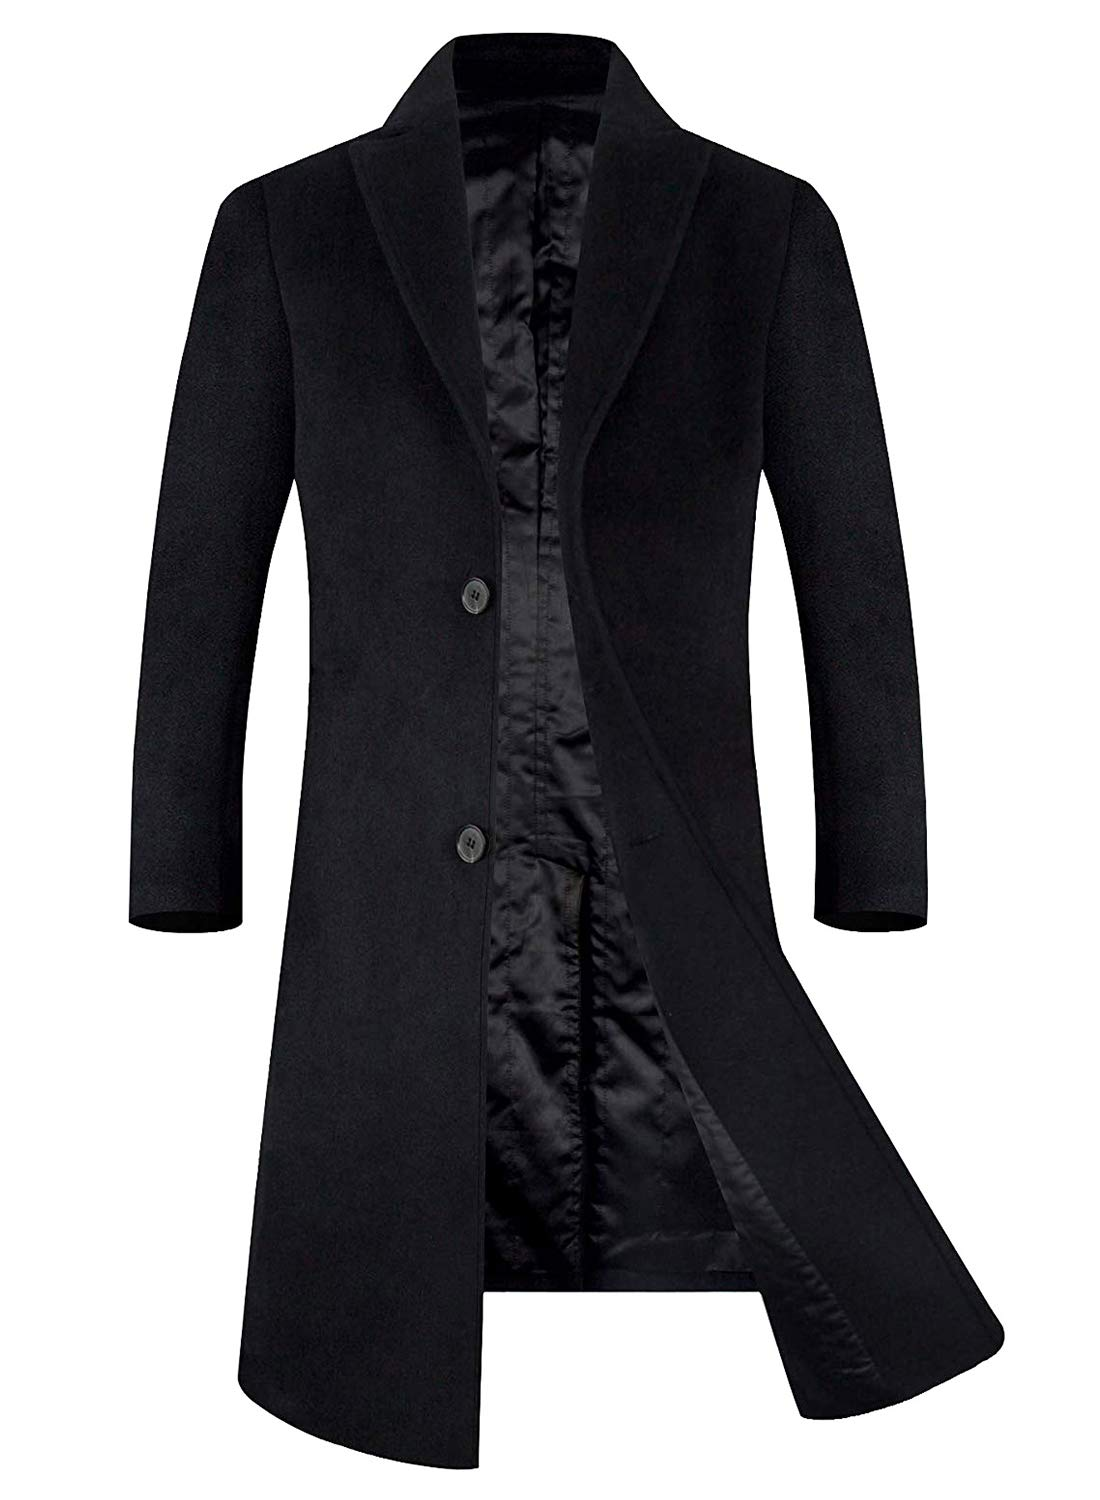 APTRO Men's Wool Blend Trench Coat Knee Length Fleece Lining Top Coat 1817 Black M by APTRO